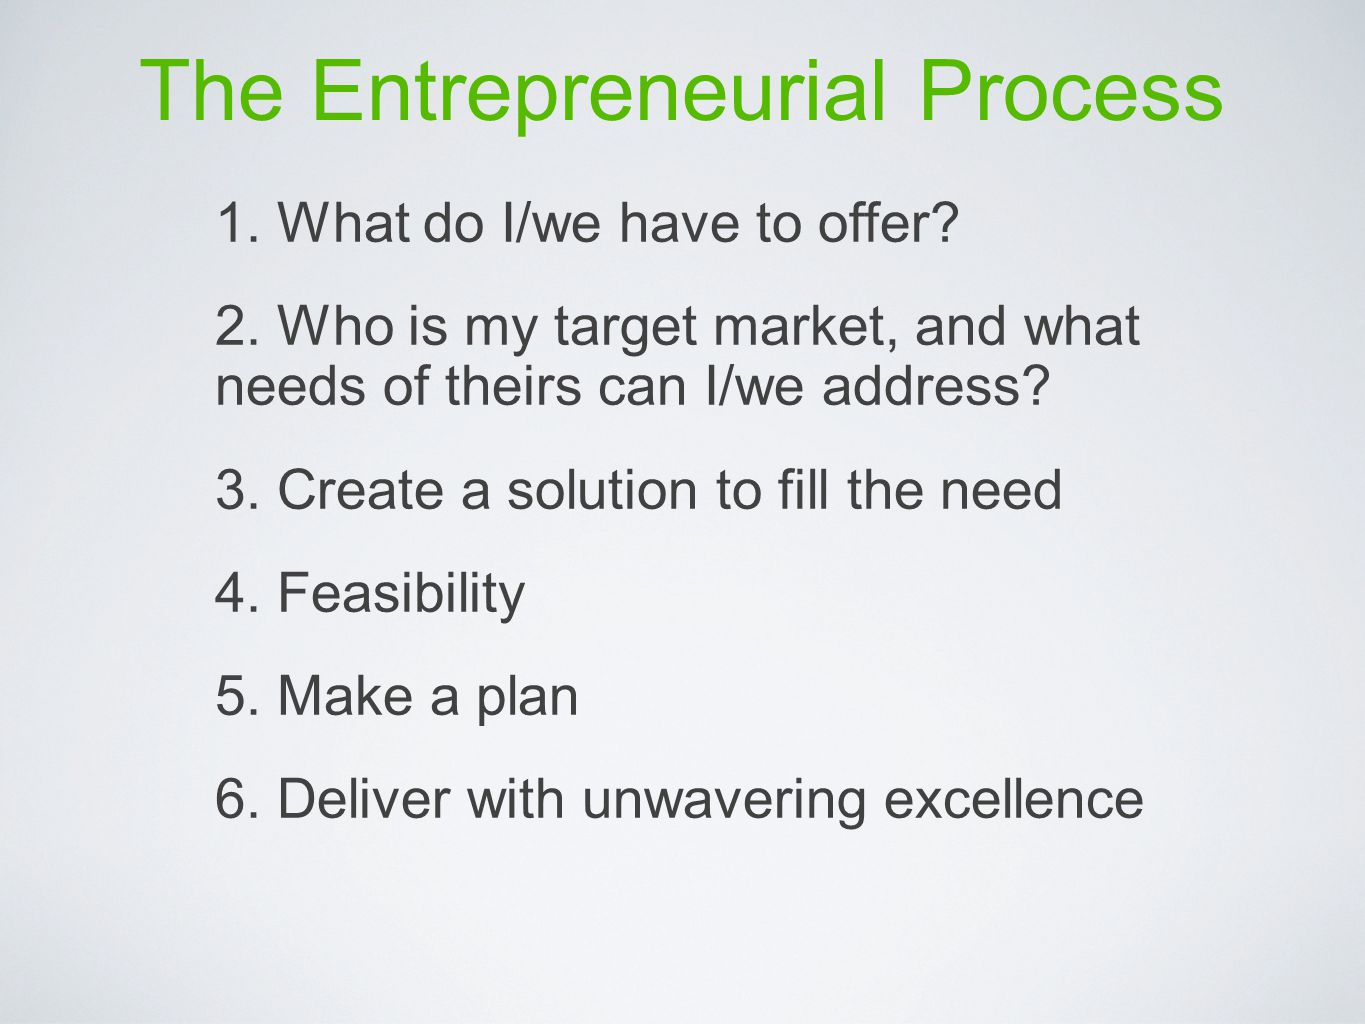 The Entrepreneurial Process 1. What do I/we have to offer? 2. Who is my target market, and what needs of theirs can I/we address? 3. Create a solution